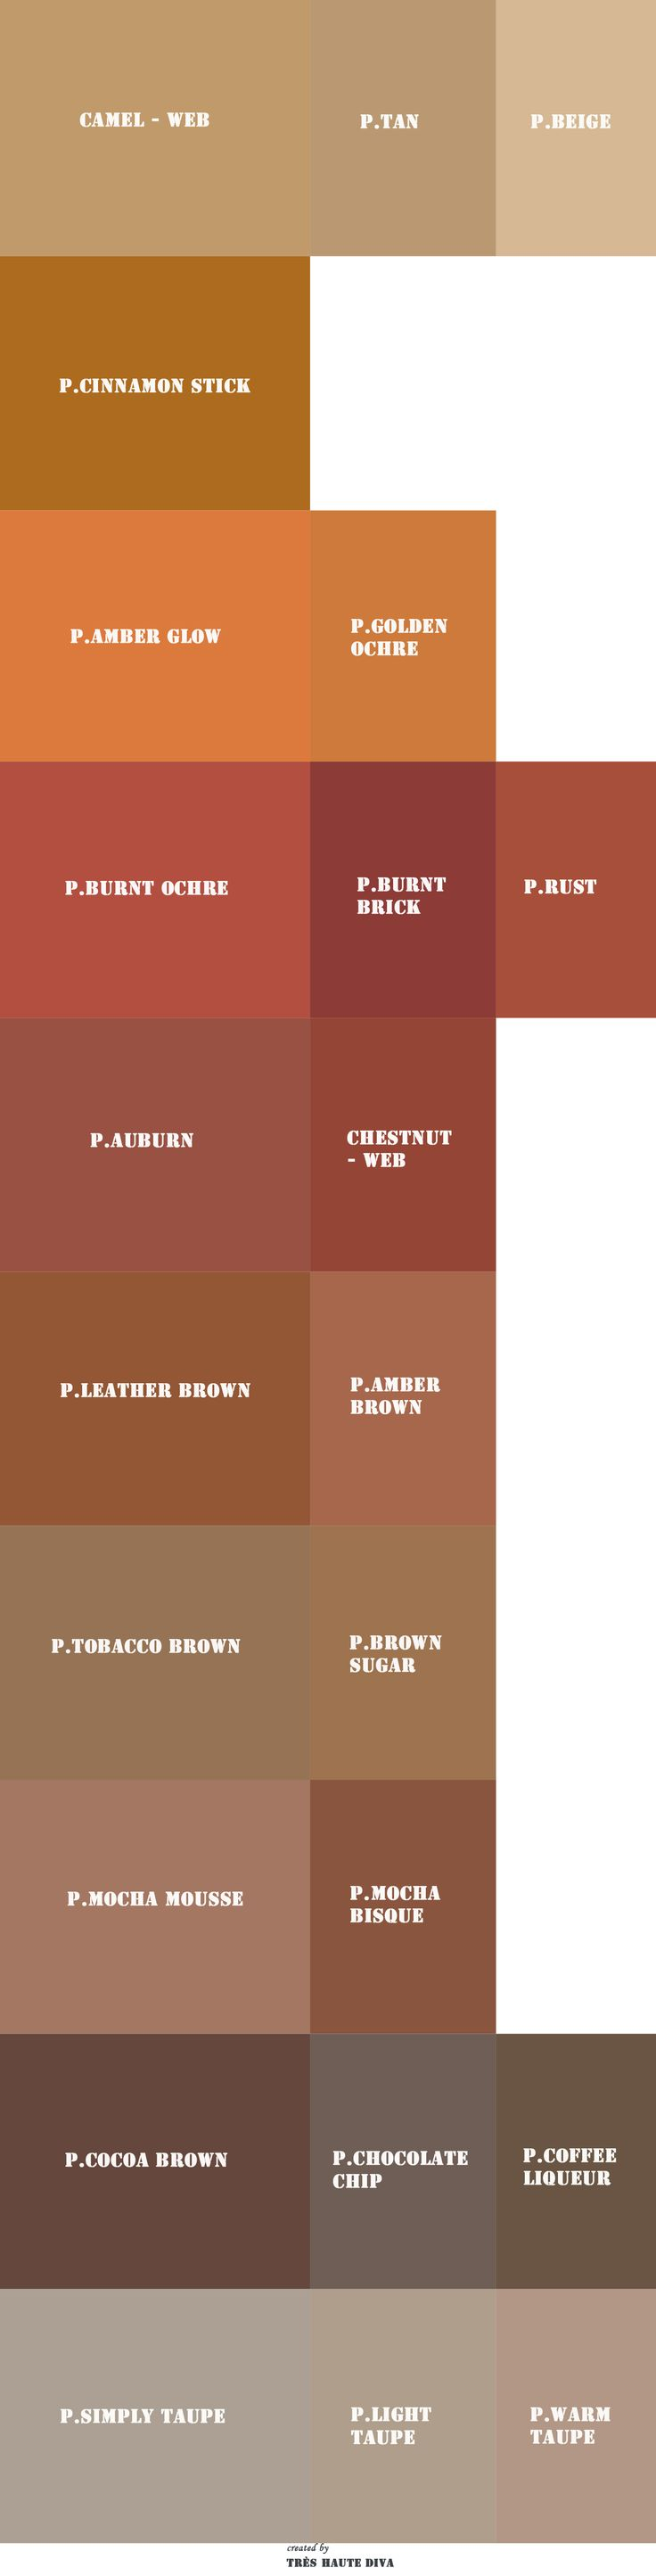 My BROWN Pantone (P.) and web (WEB) reference colors. By the way, the Pantone as well as the web colors are sometimes way off. Web colors (from Wikipedia) are quite reliable with their given RGB, HEX, HTML etc. values and are not to be dismissed. ♔THD♔